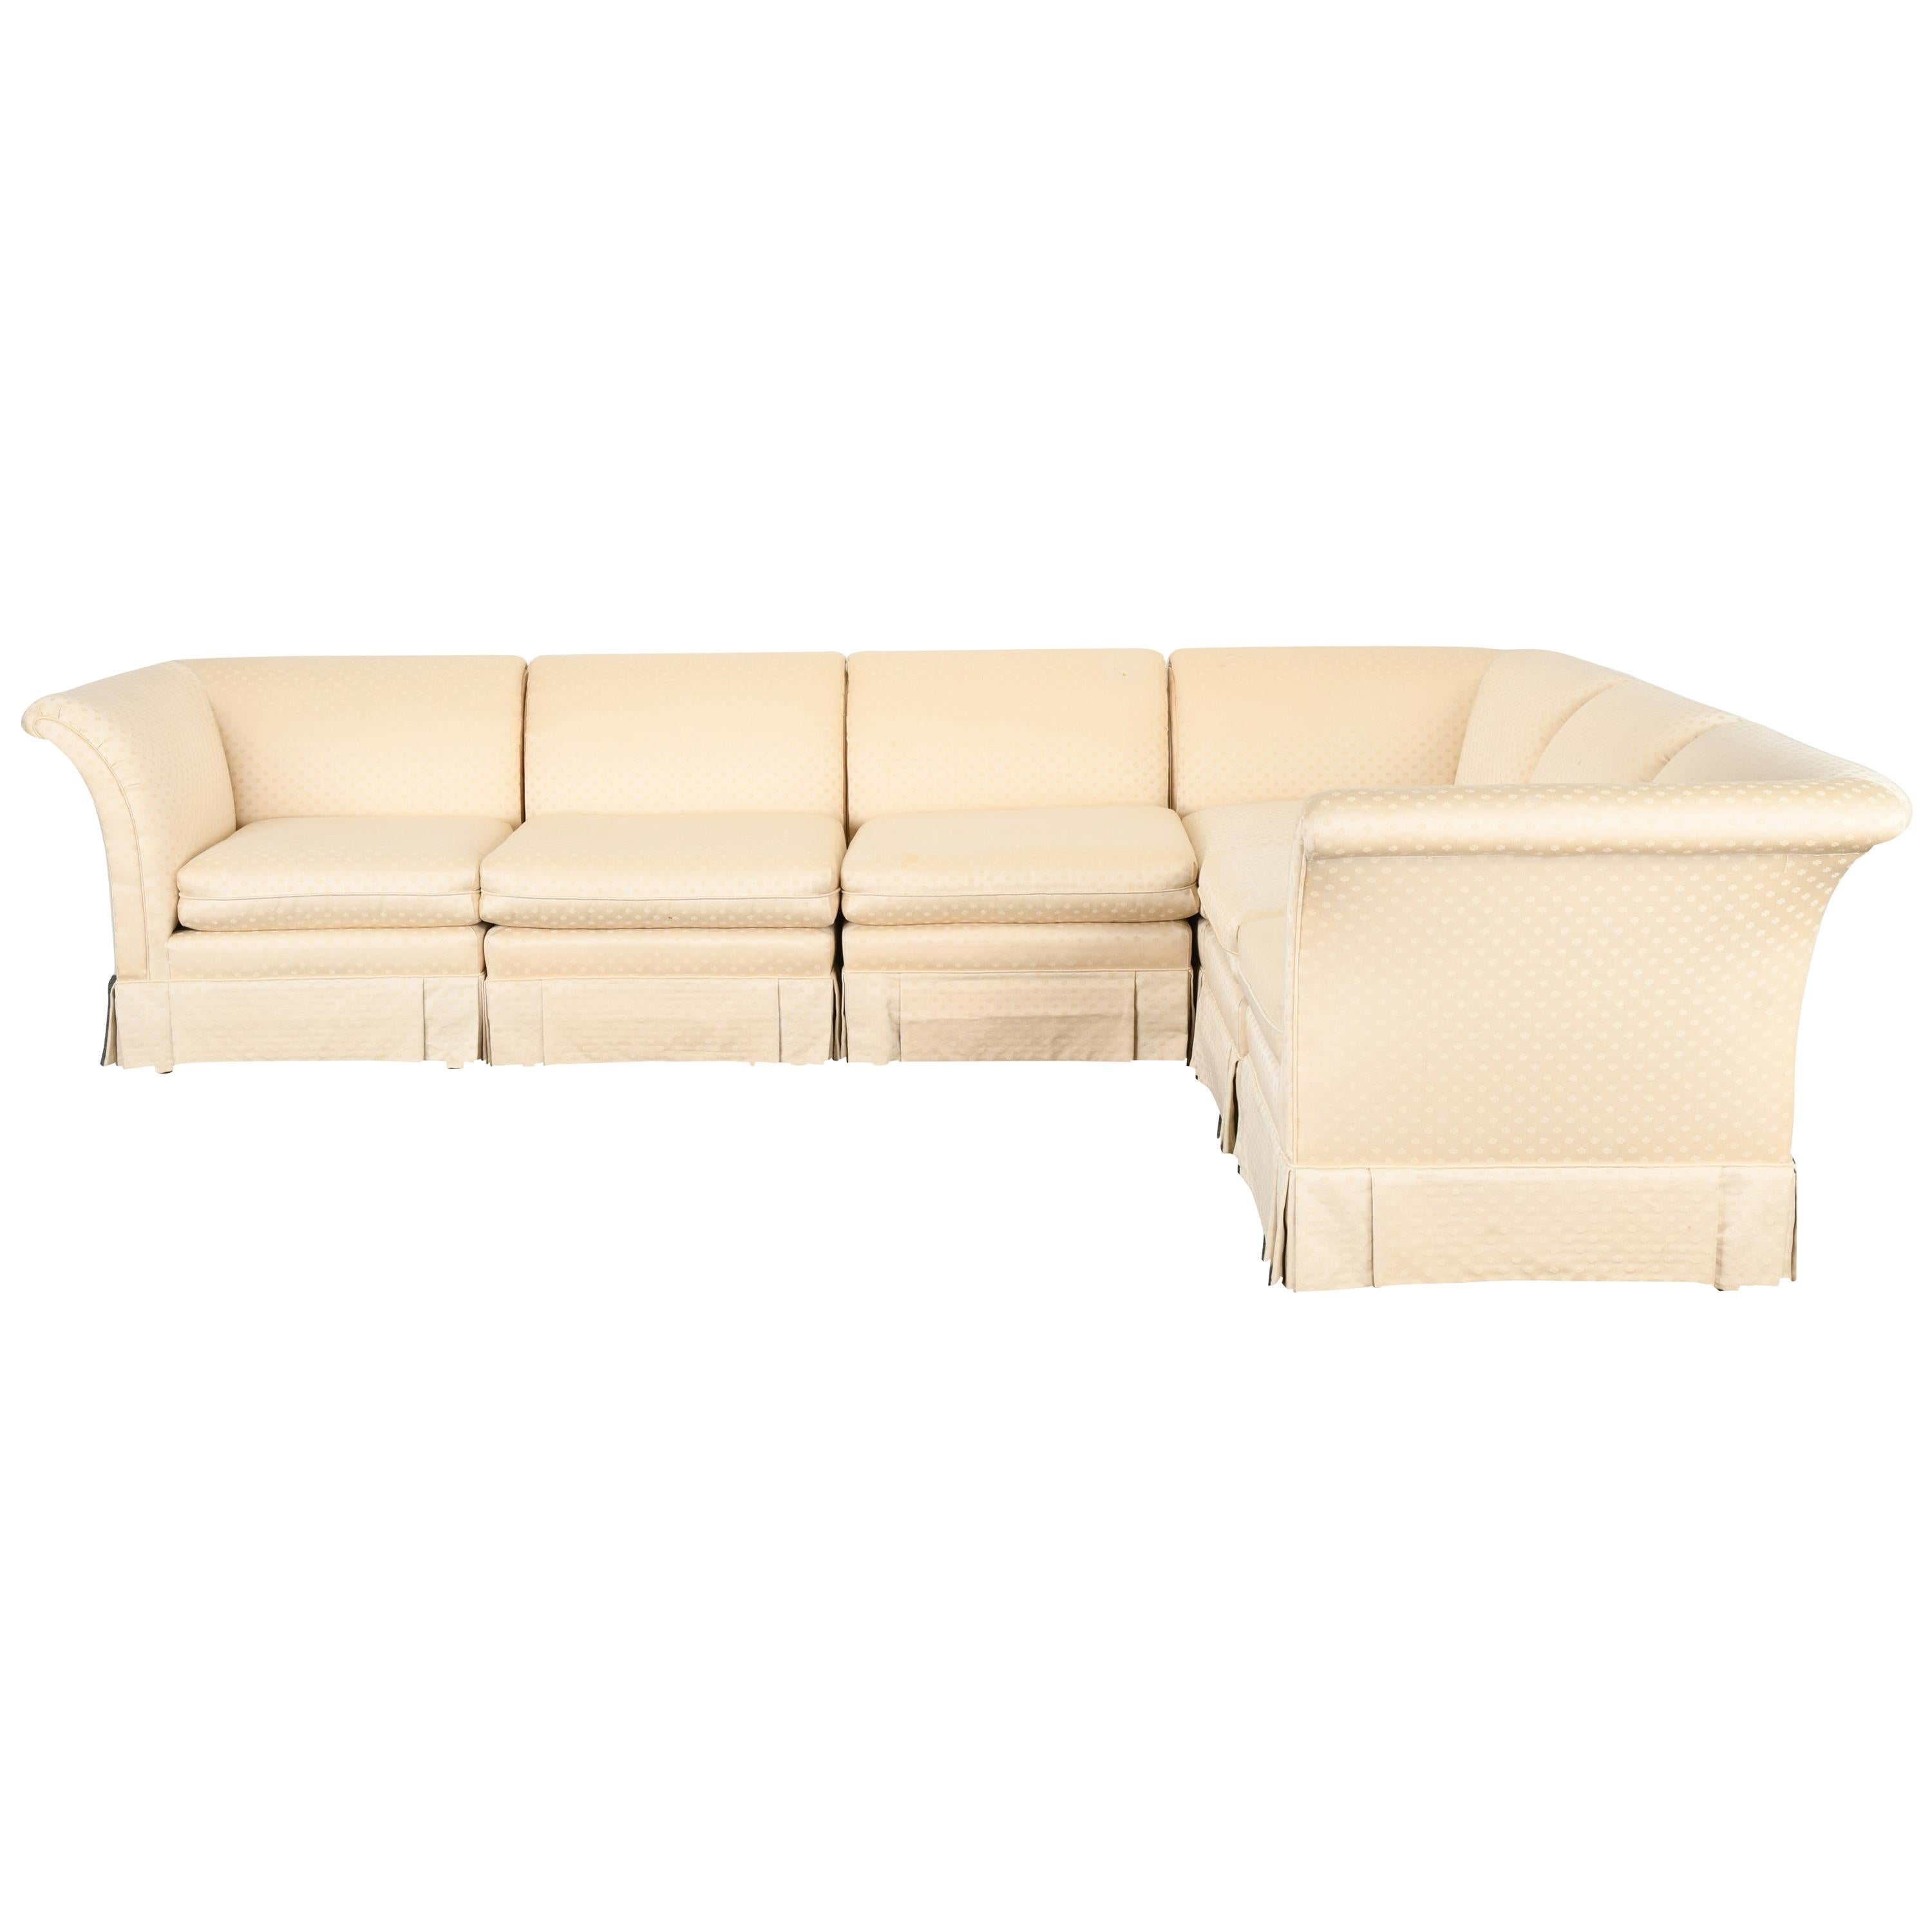 Sectional Sofa by Pearson, 1980s